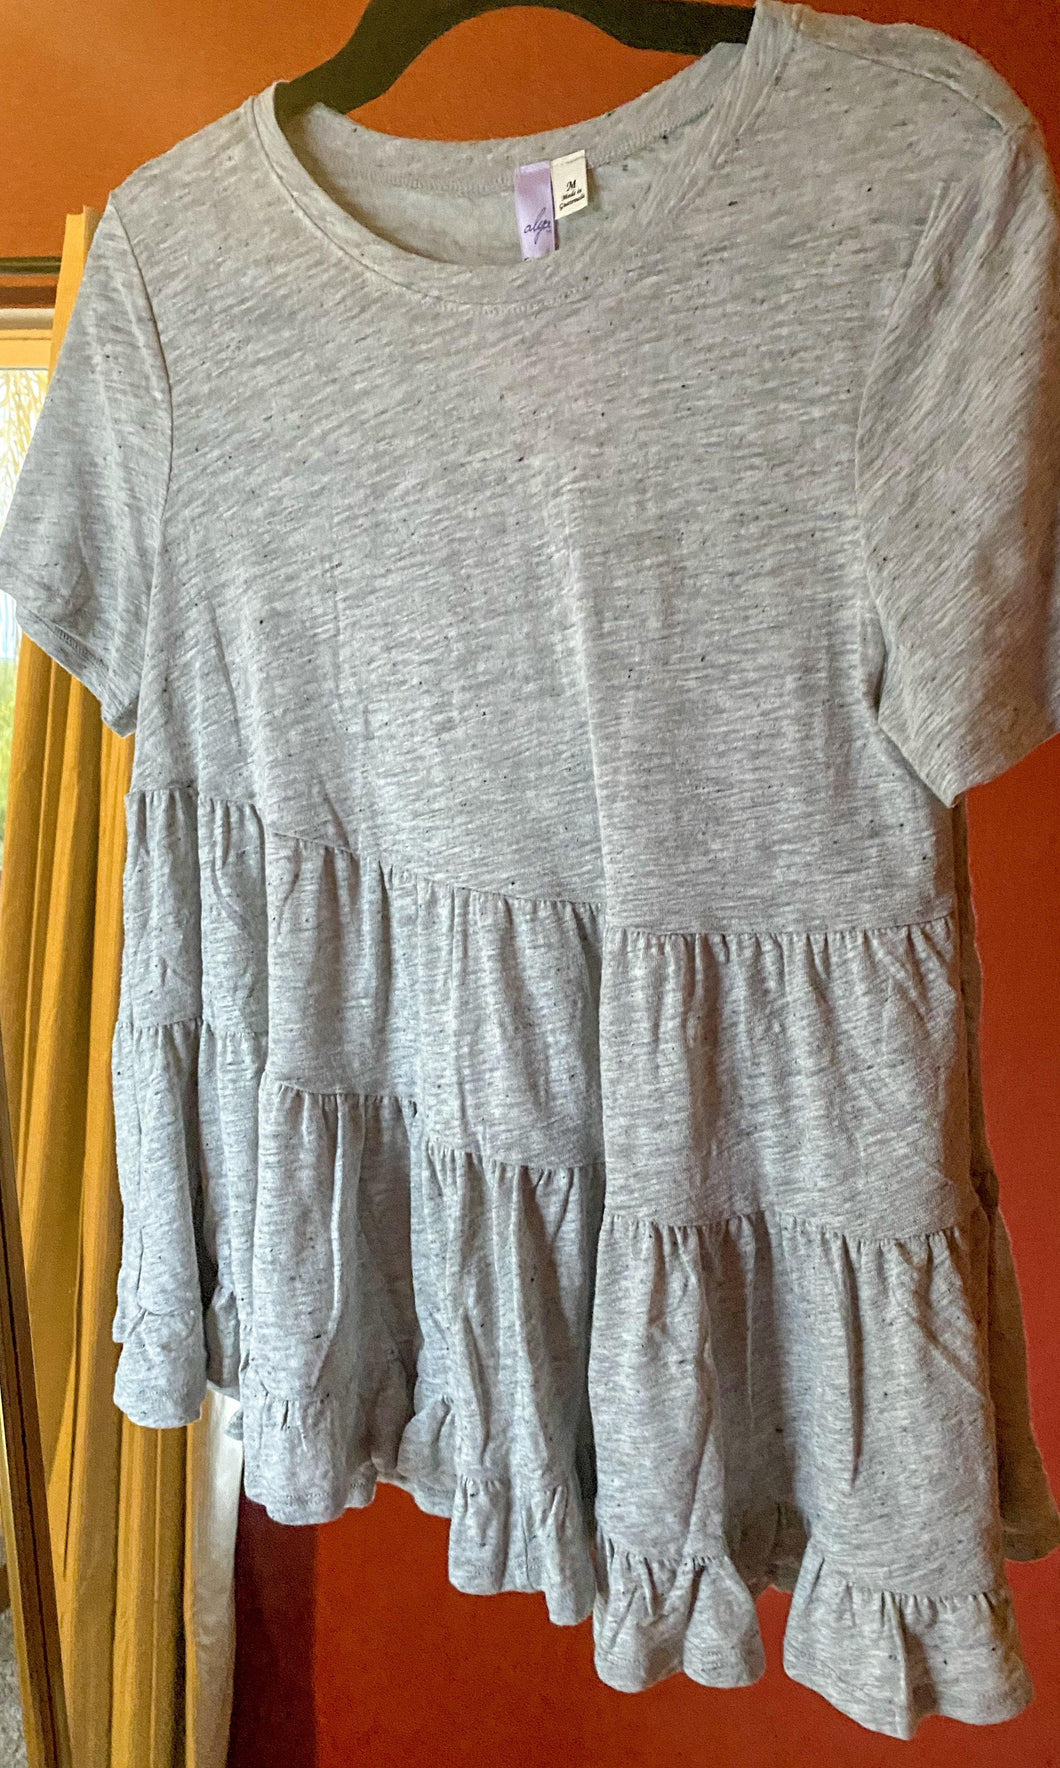 Tiered knit top grey - THE SUNDAY DRESS